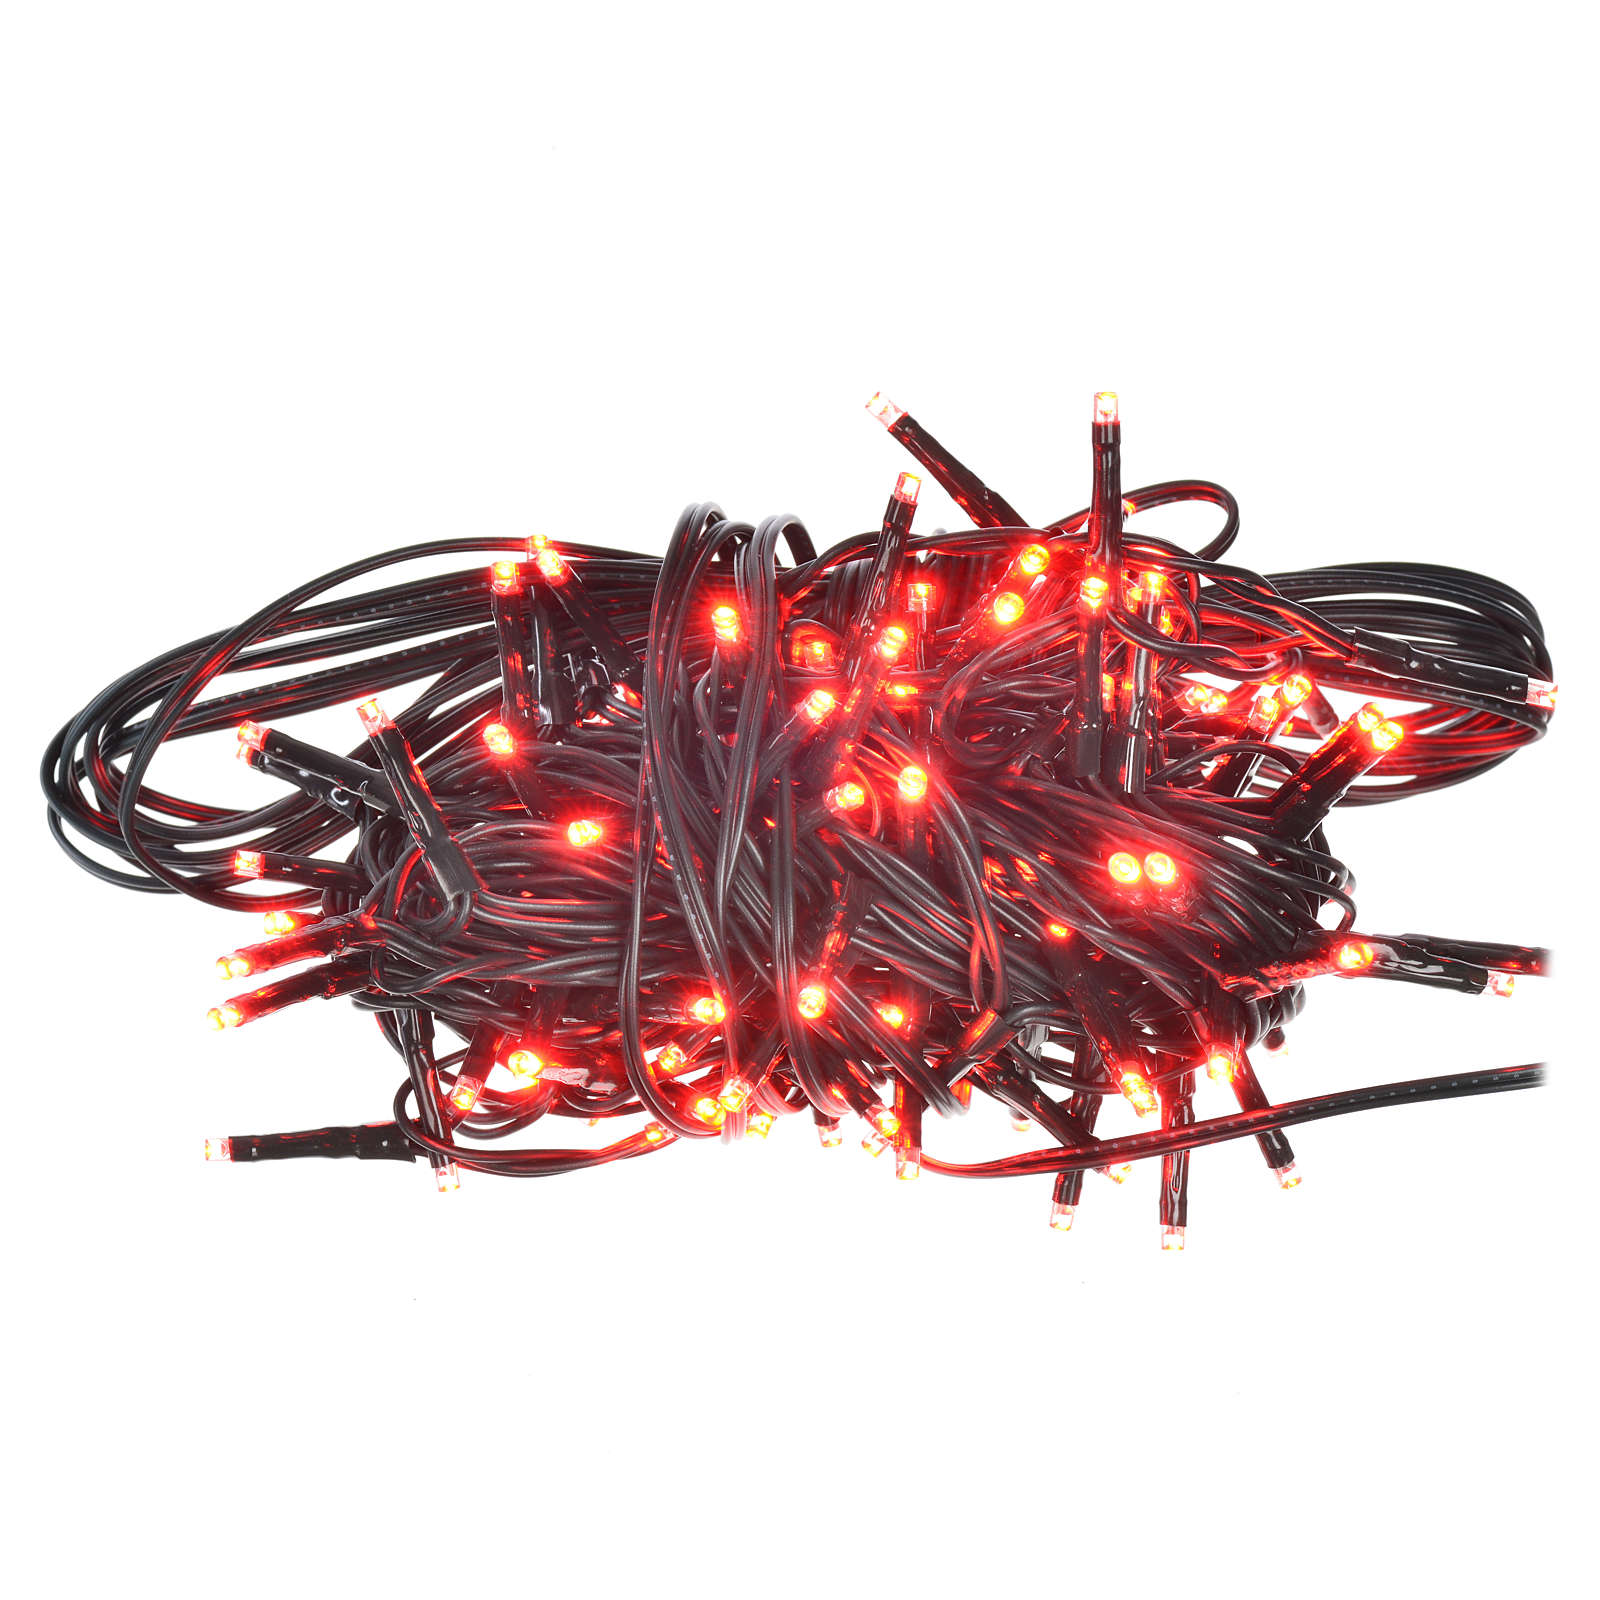 Fairy lights 120 mini LED, red, for outdoor/indoor use, programm 3